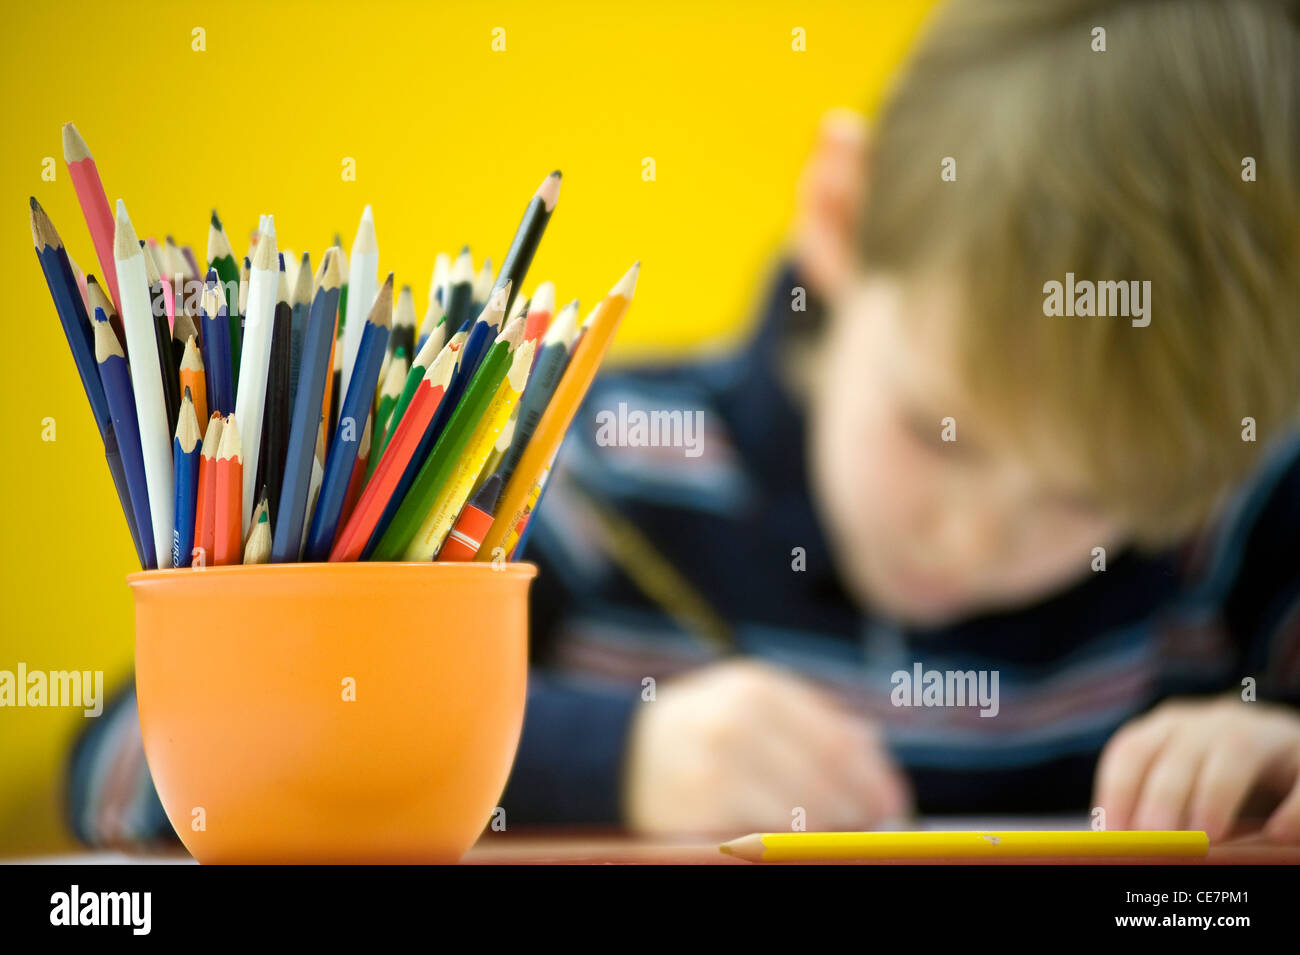 At primary school - Stock Image